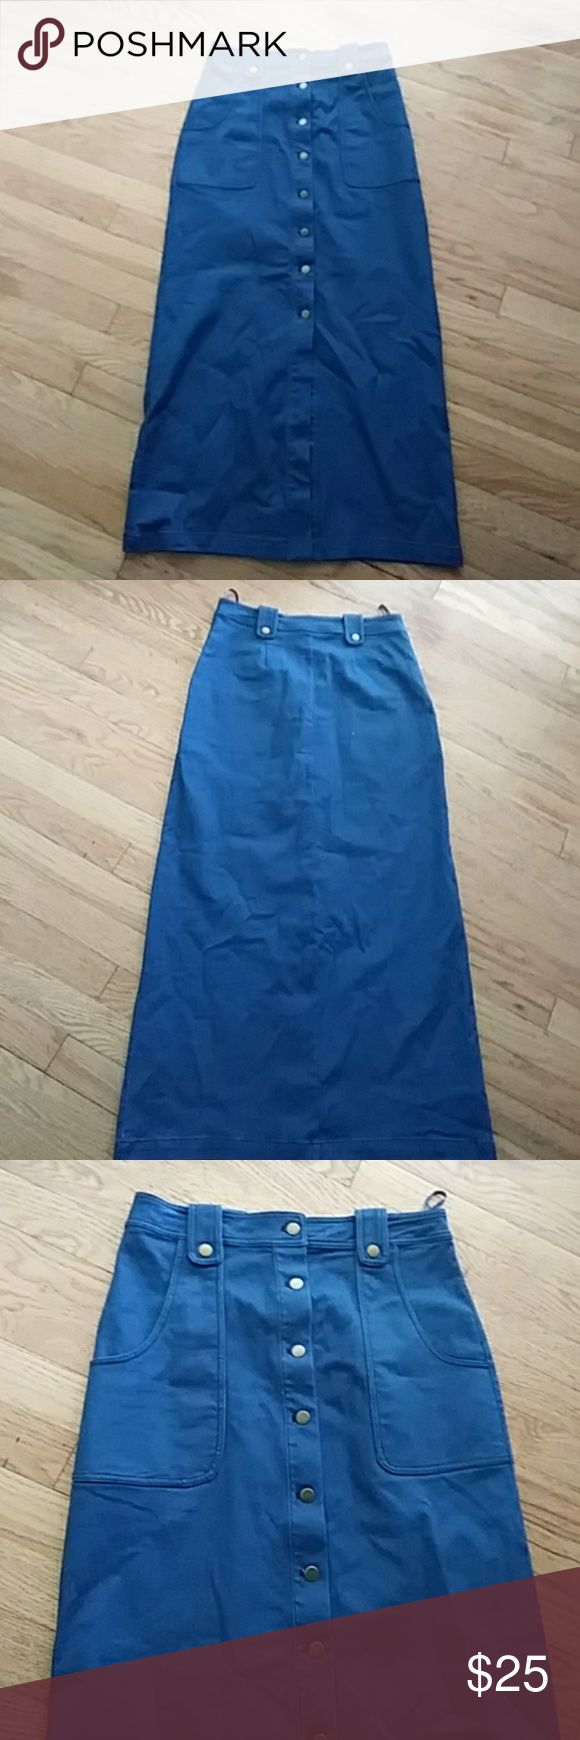 Ladies denim skirt Button up denim maxi skirt cotton candy Skirts Maxi